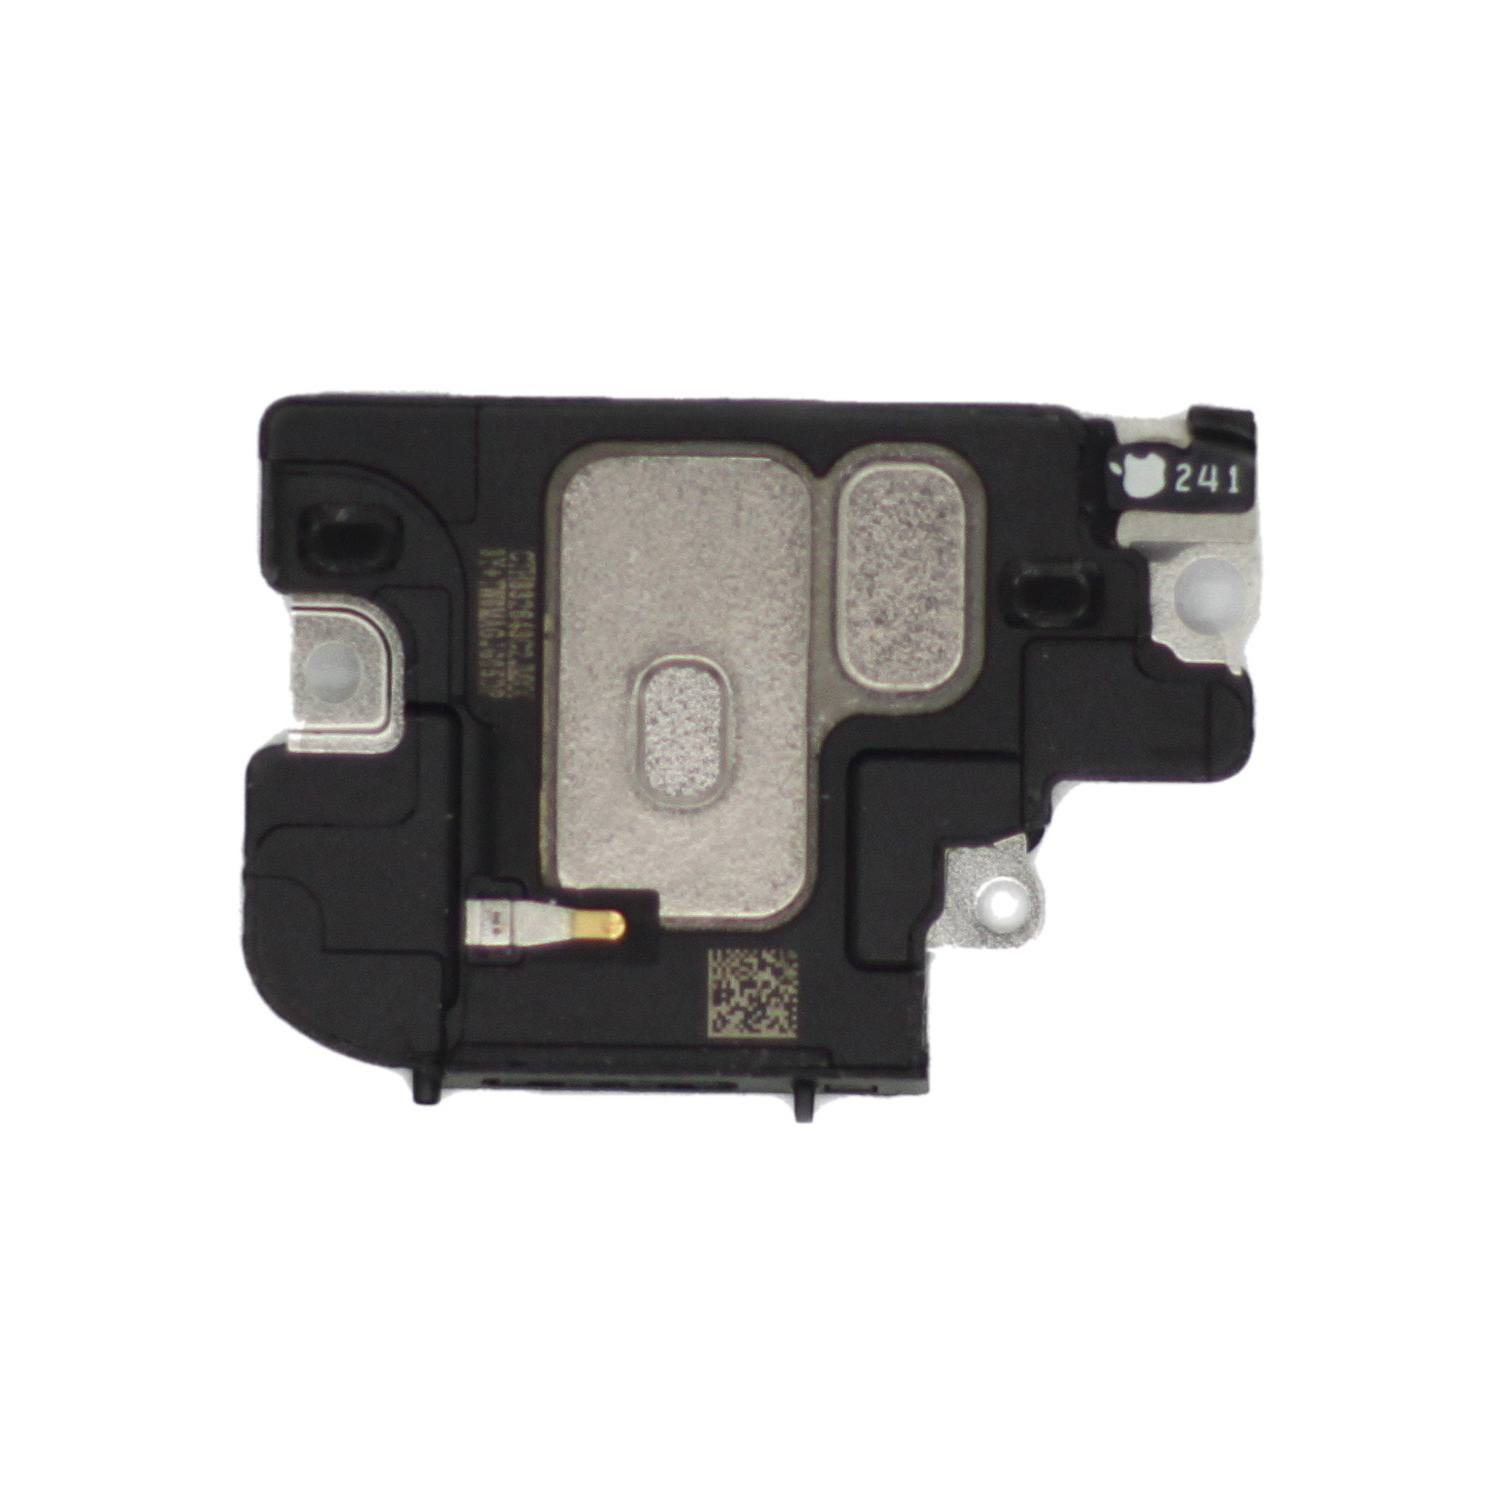 New Loud Speaker Ringer Buzzer replacement for iPhone XS A1920 A2097 A2098 A2100 Pic1